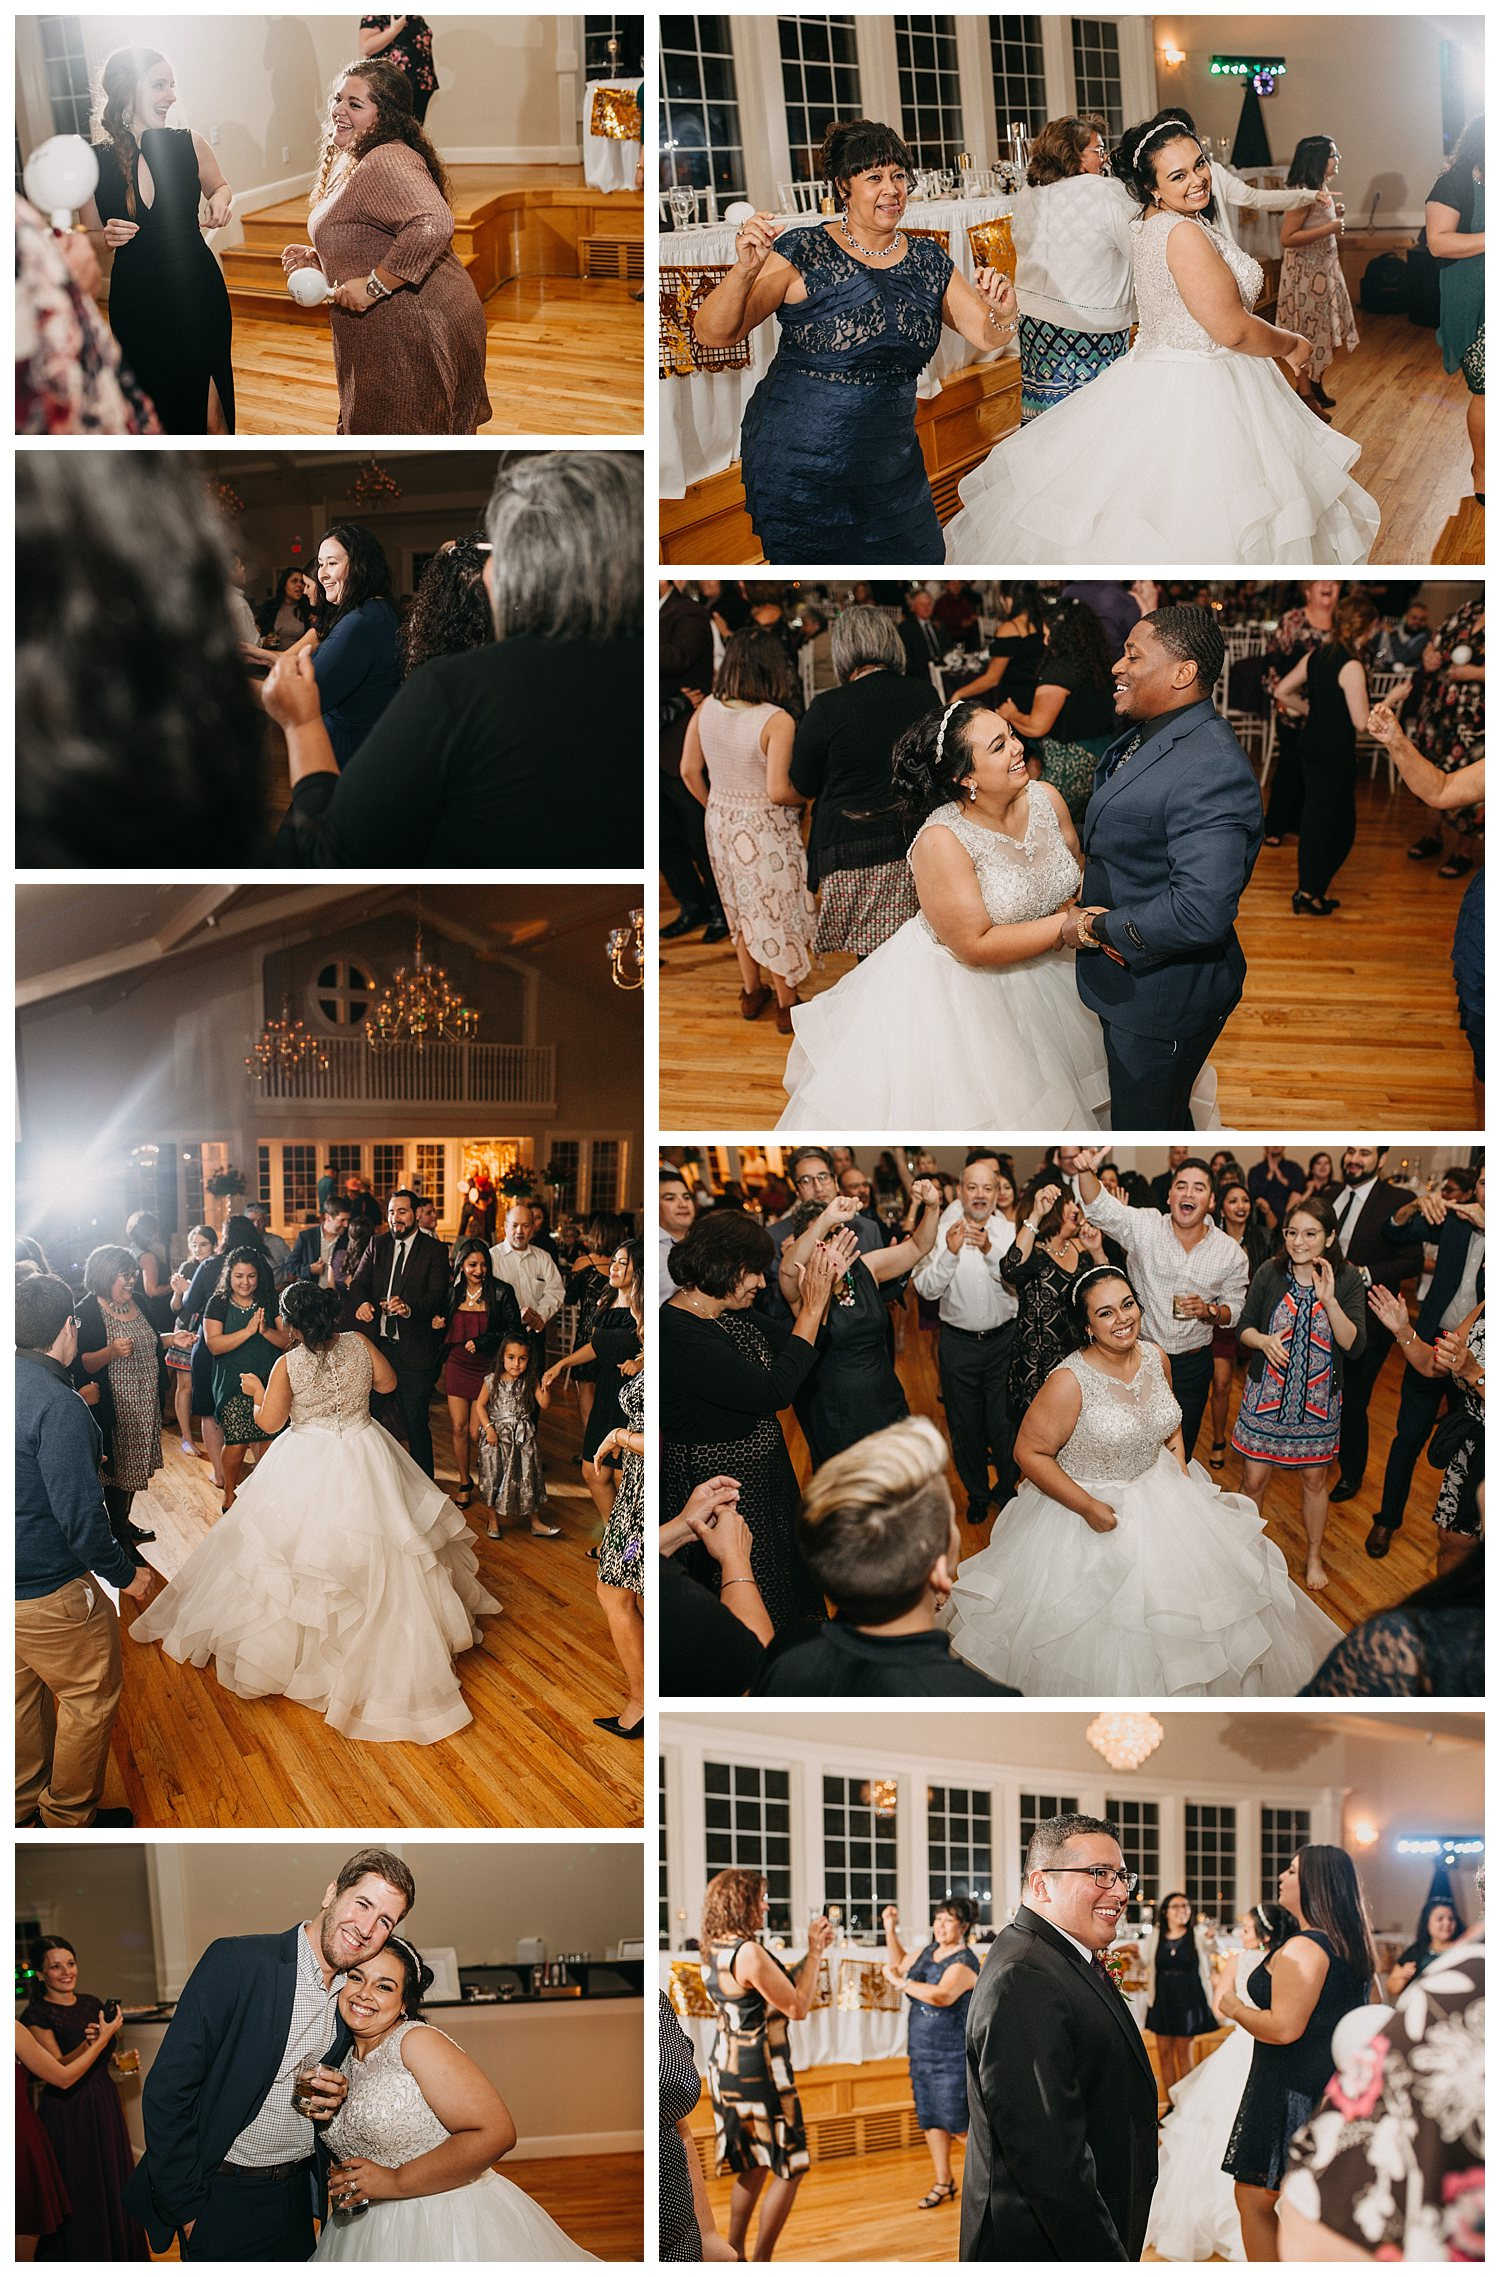 Kelsey_Diane_Photography_Hawthorne_House_Parkville_Kansas_City_Wedding_Veronica_Pat_0079.jpg